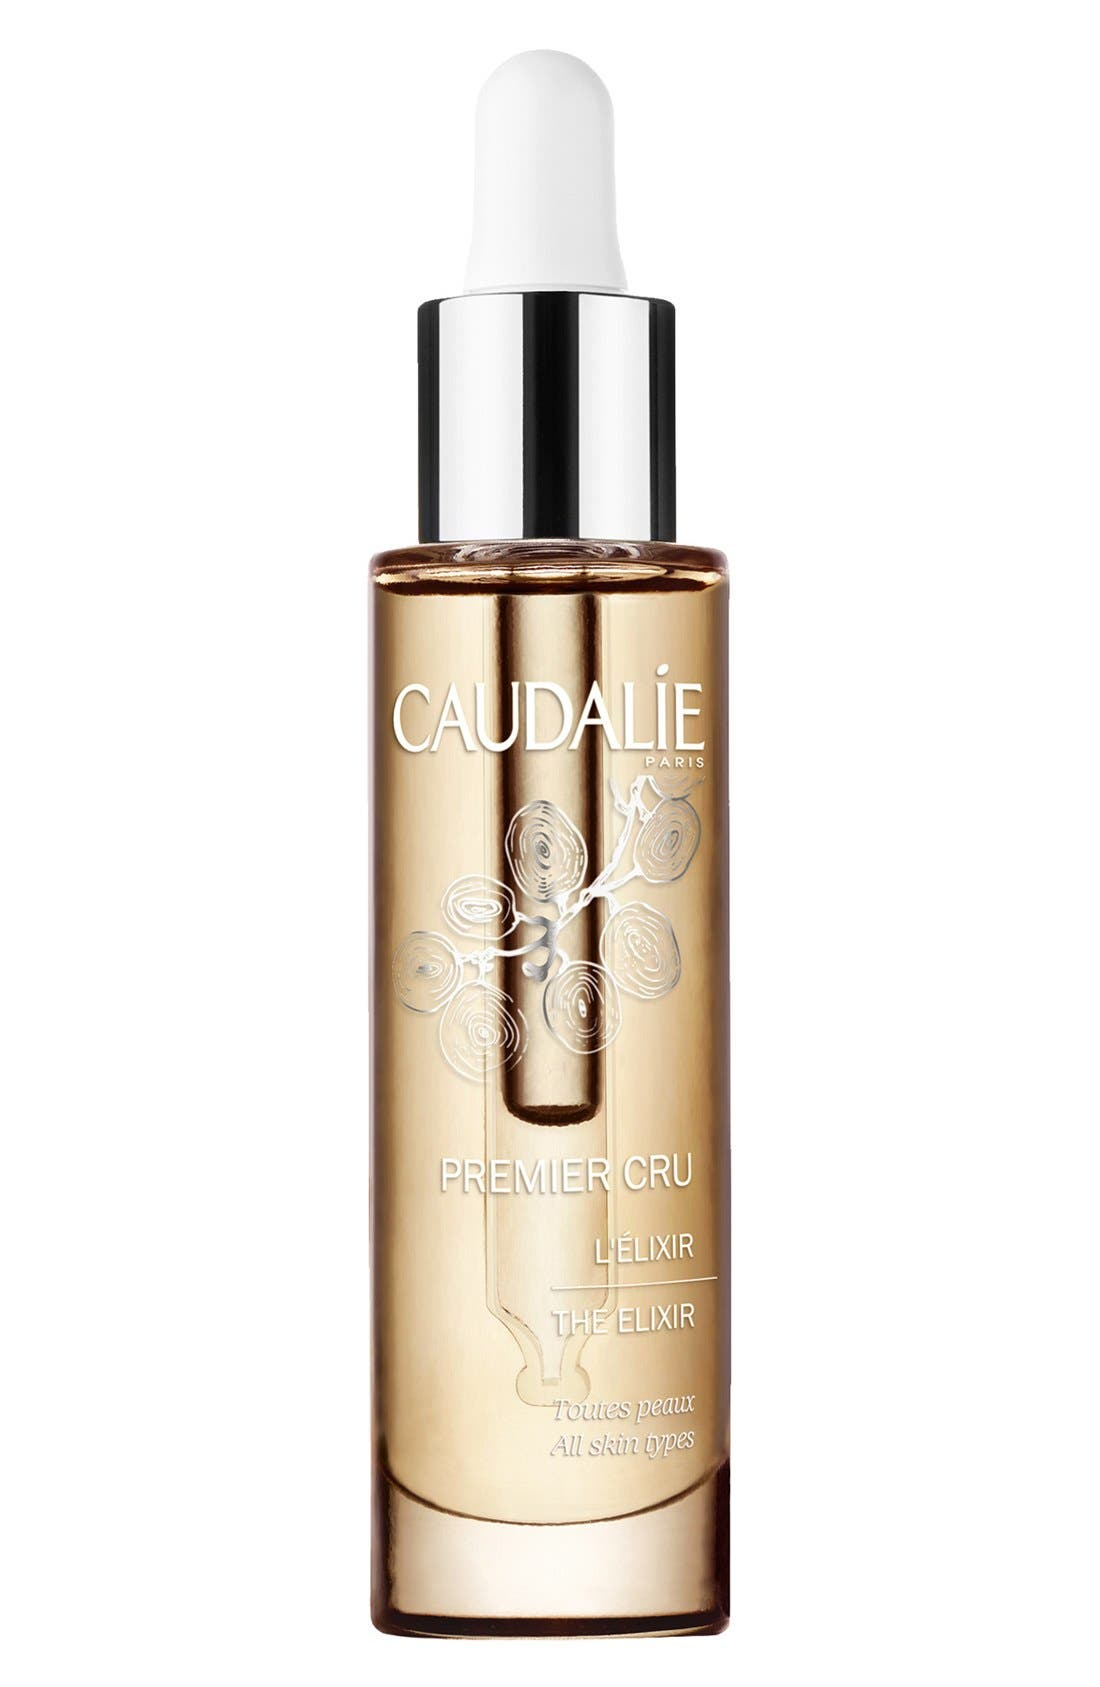 CAUDALÍE 'Premier Cru - The Elixir' Dry Oil